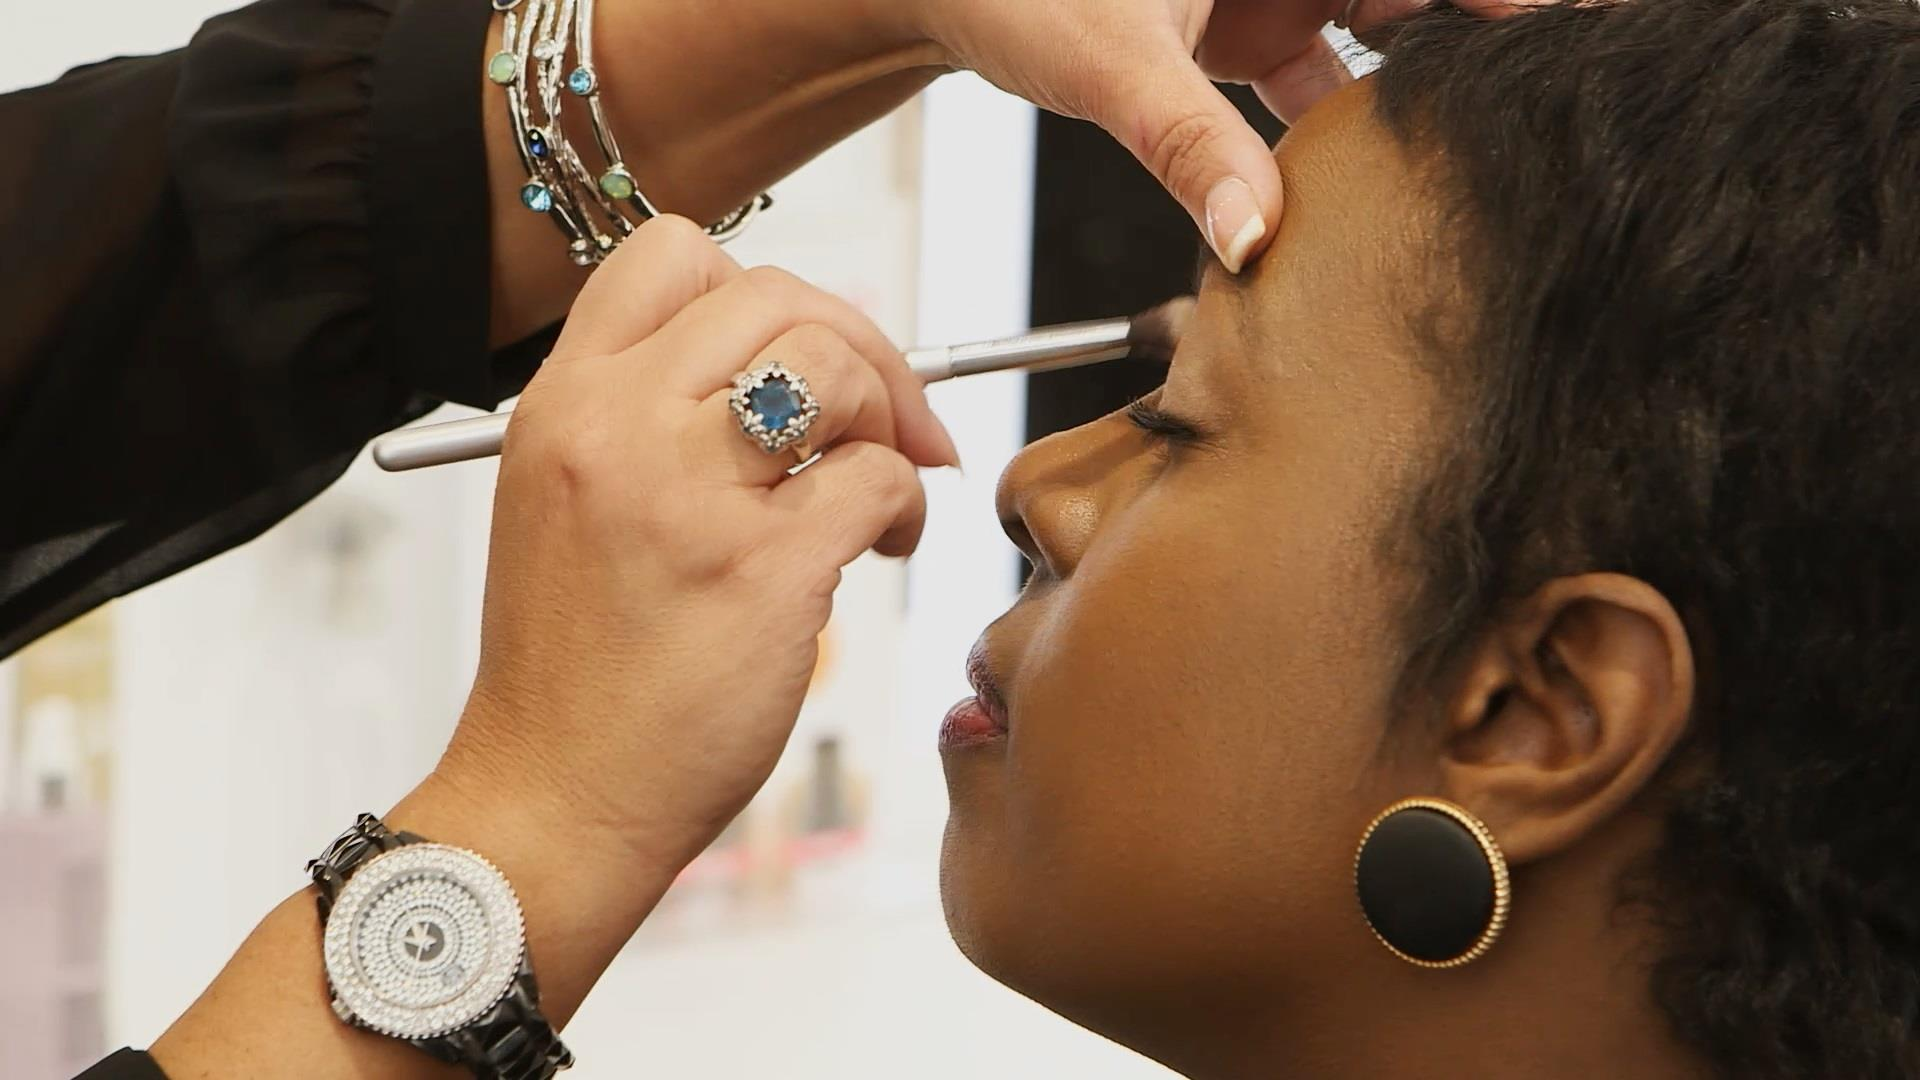 Makeup counter etiquette: Everything you need to know